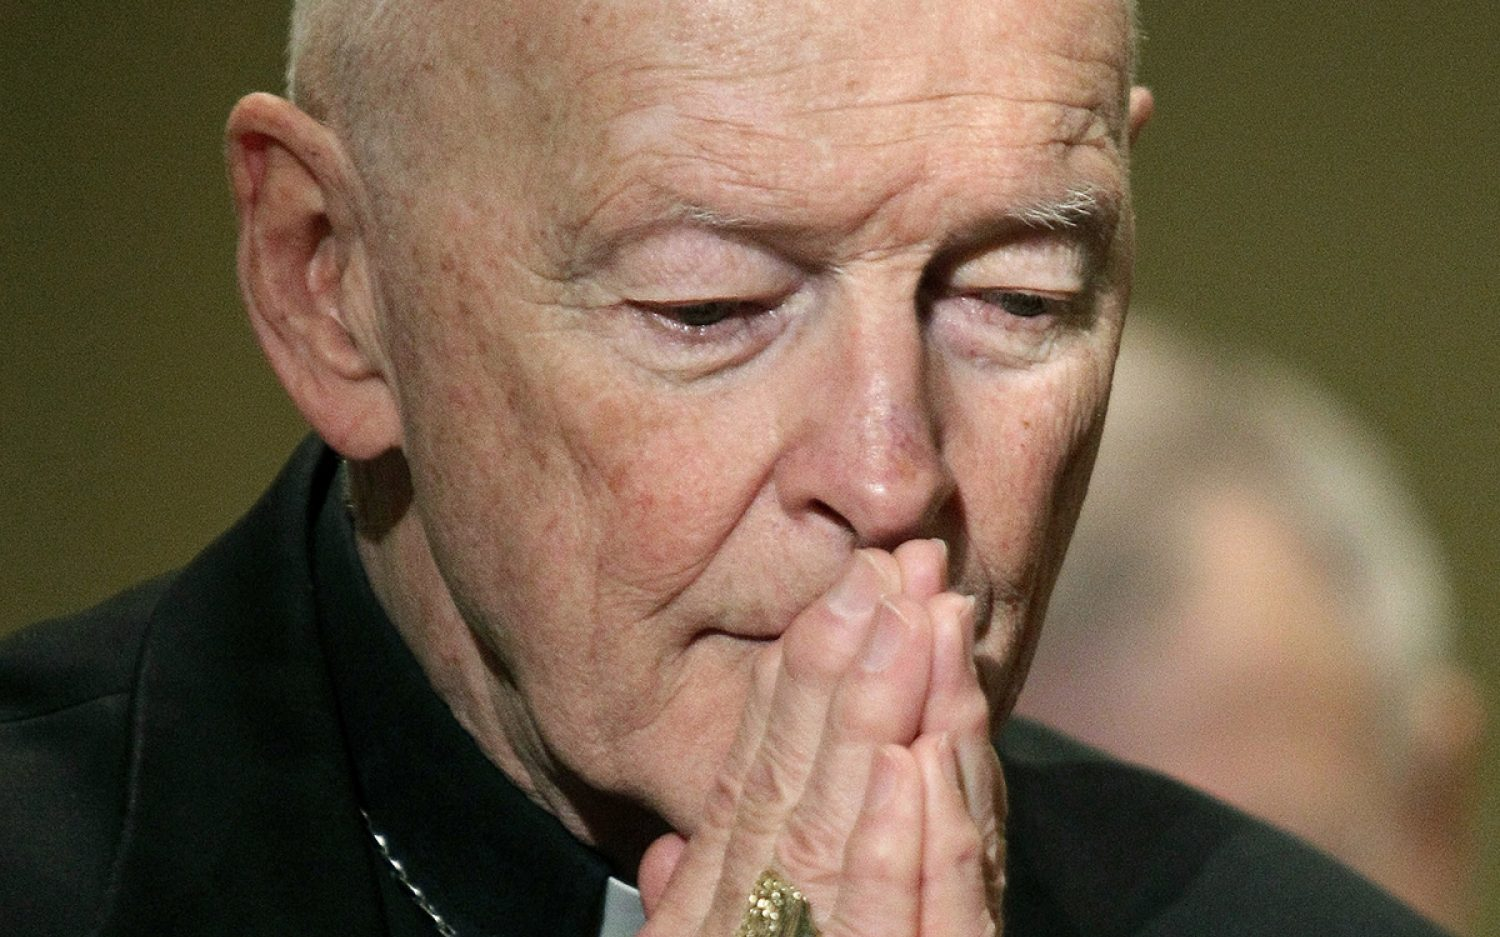 Vatican releases report on accused cardinal